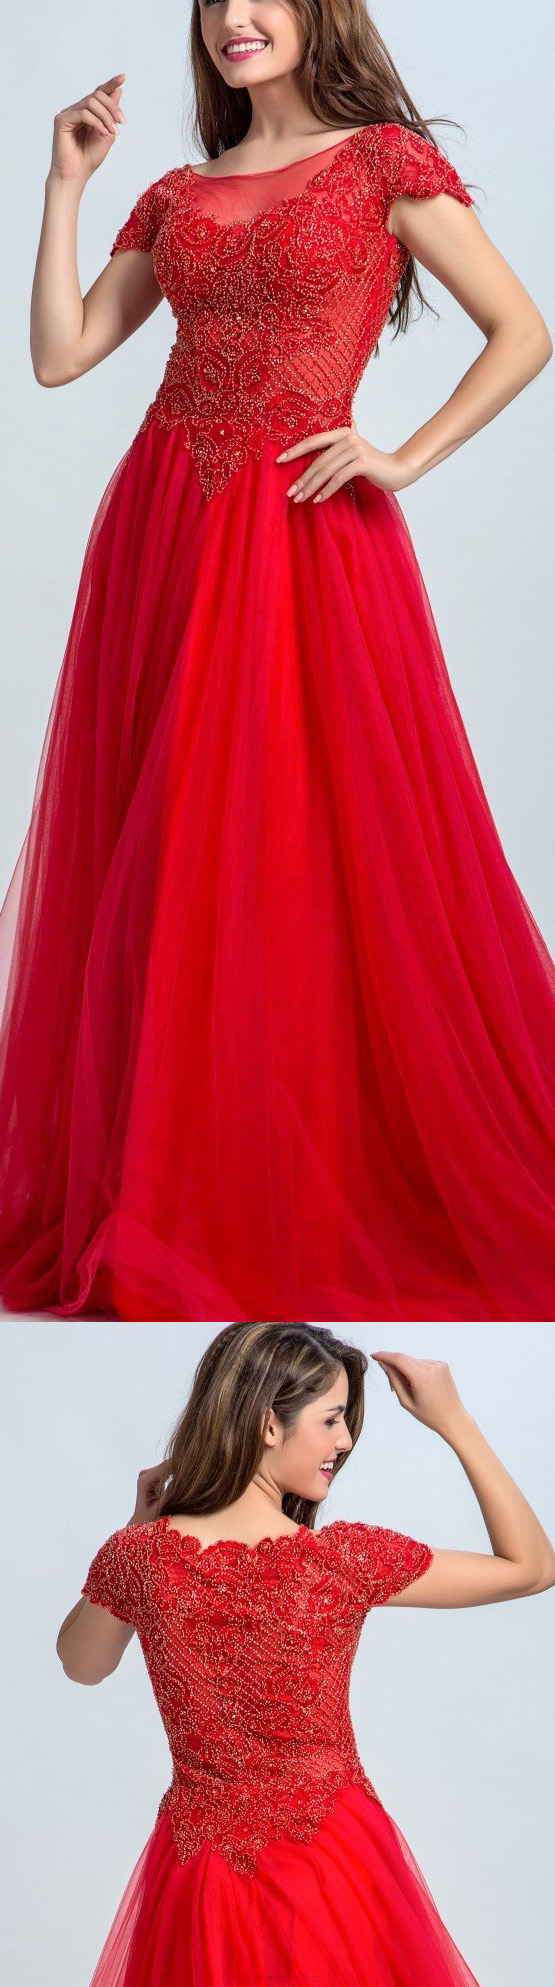 Bateau evening dresses red long prom dresses red color aline